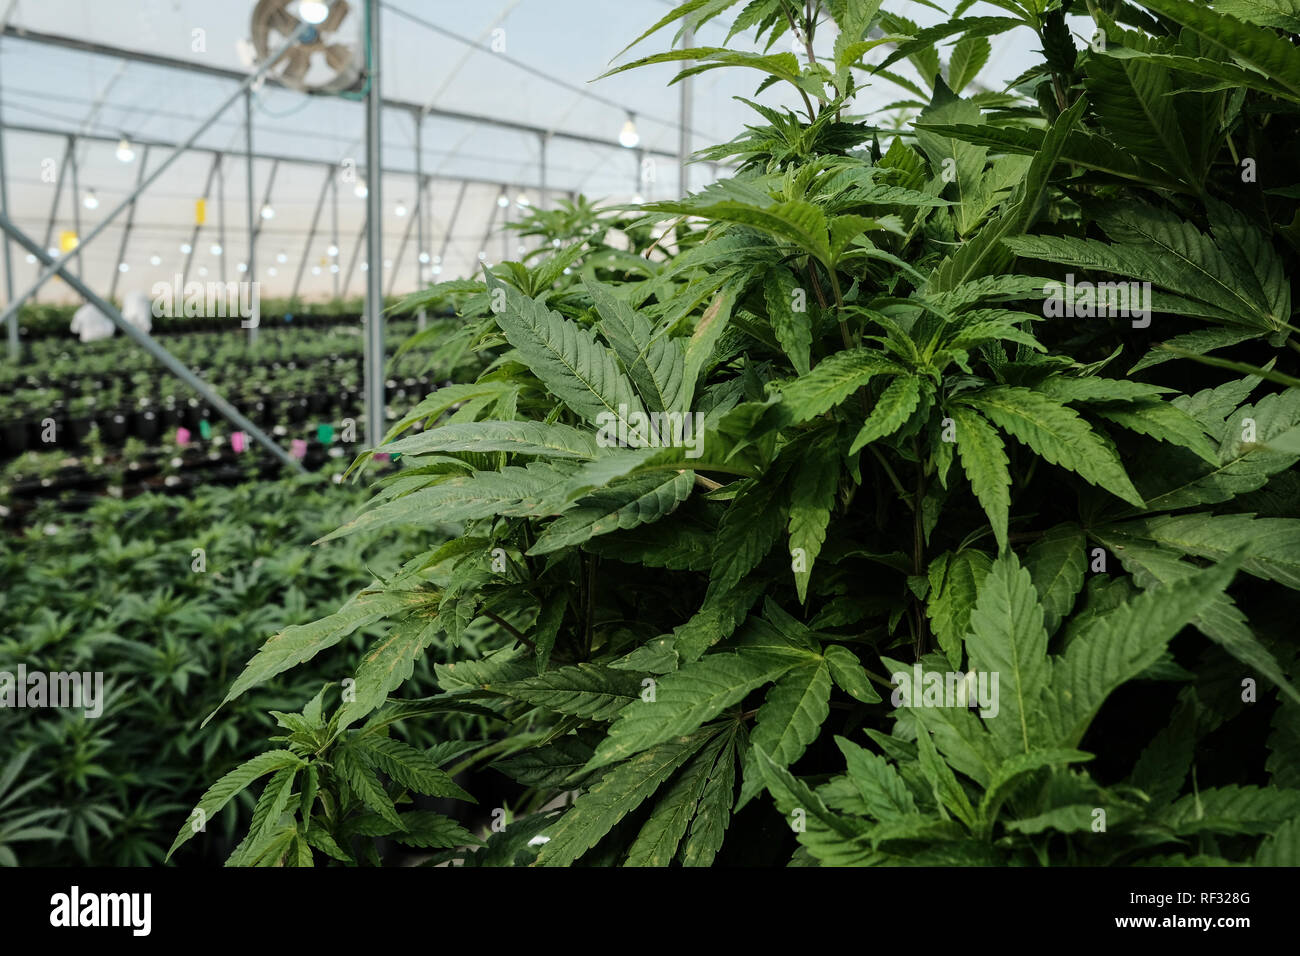 Revadim, Israel. 23rd January, 2019. Breath of Life Pharma (BOL), one of the world's largest medical Cannabis production, research, and development facility and clinical trials hub, boasts 1,000,000 Square feet of GACP cultivation facilities, 65,000 Square feet of GMP production plant, labs and offices, 80% market share in Israeli pharmacies and 32 Phase 2 clinical trials on their way, representing one of the most comprehensive cannabinoid clinical trial portfolios in the industry. Credit: Nir Alon/Alamy Live News - Stock Image